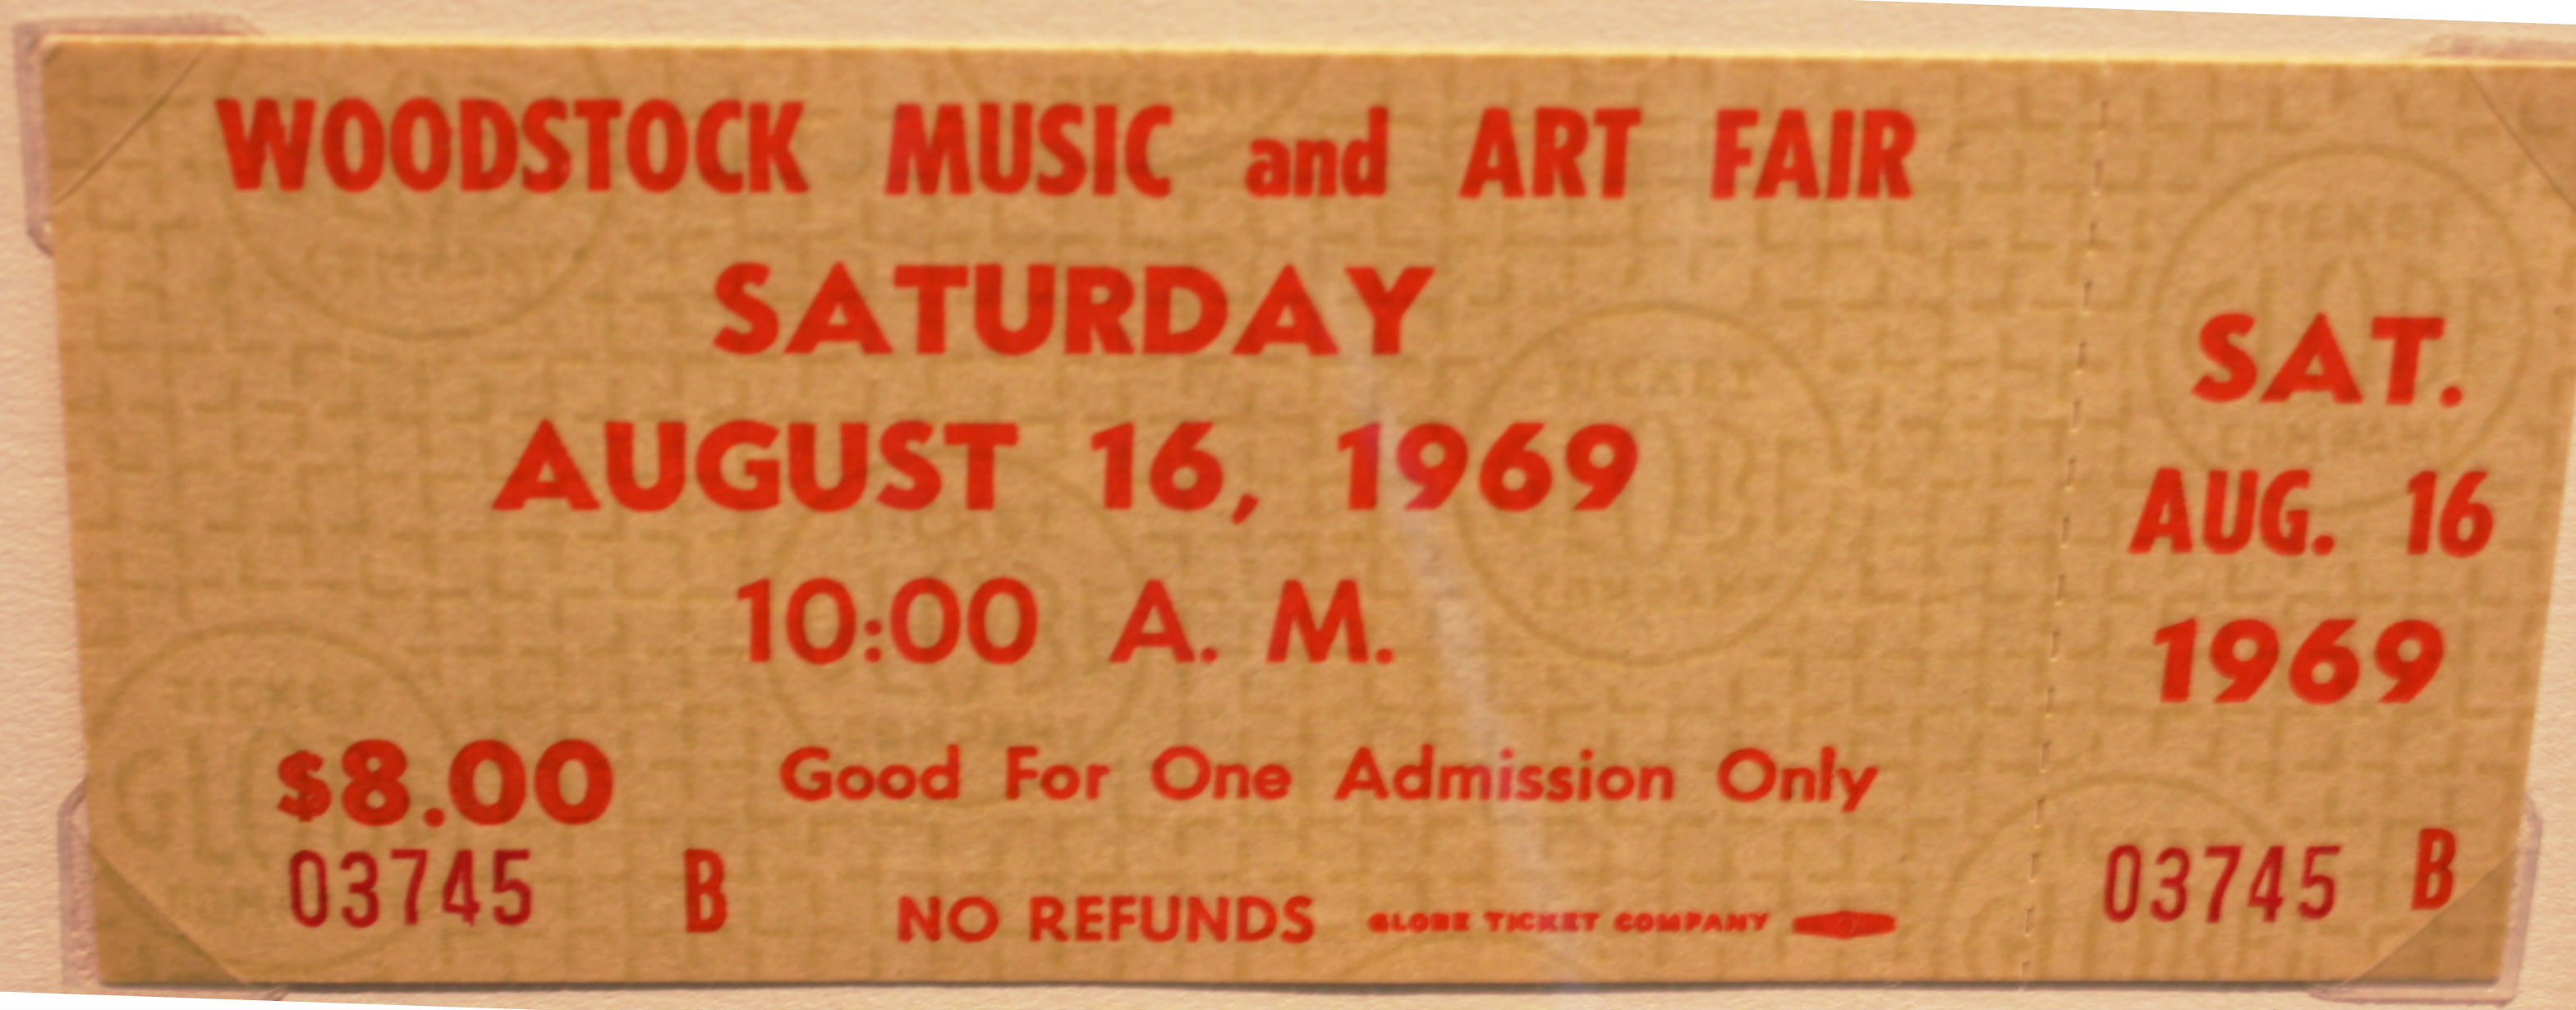 ART8: WOODSTOCK TICKET 03745